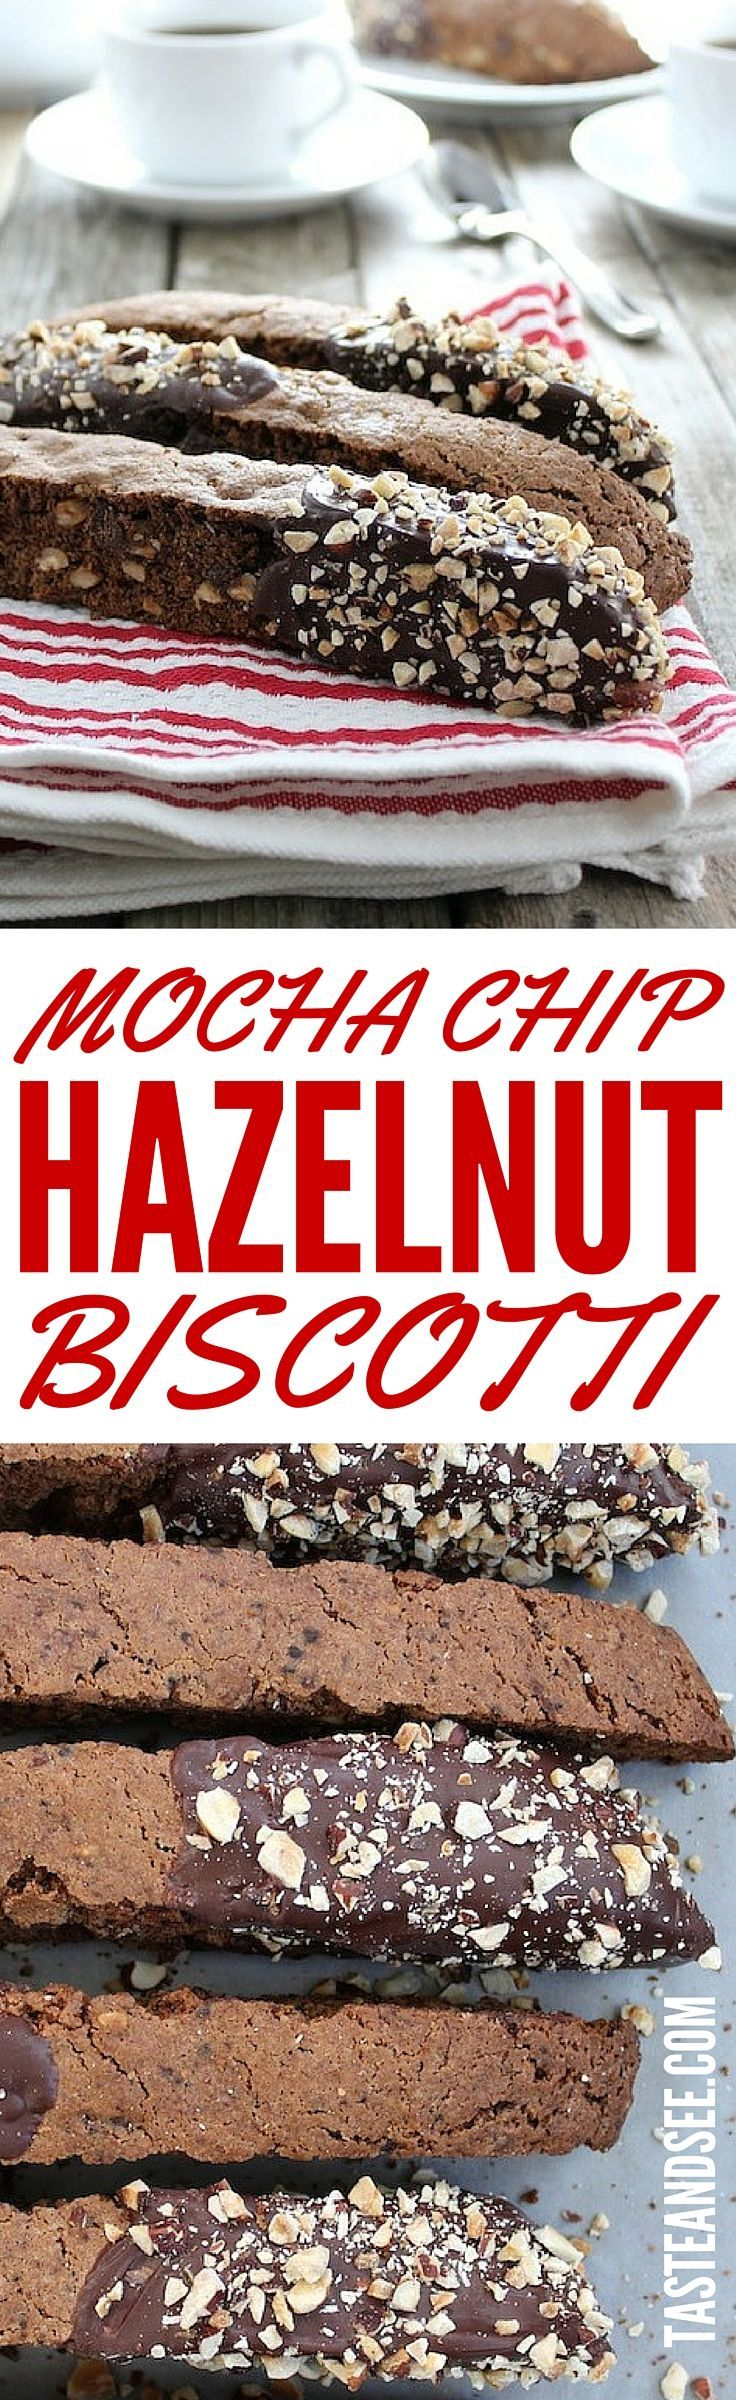 Mocha Chip Hazelnut Biscotti - loaded with chopped hazelnuts ...